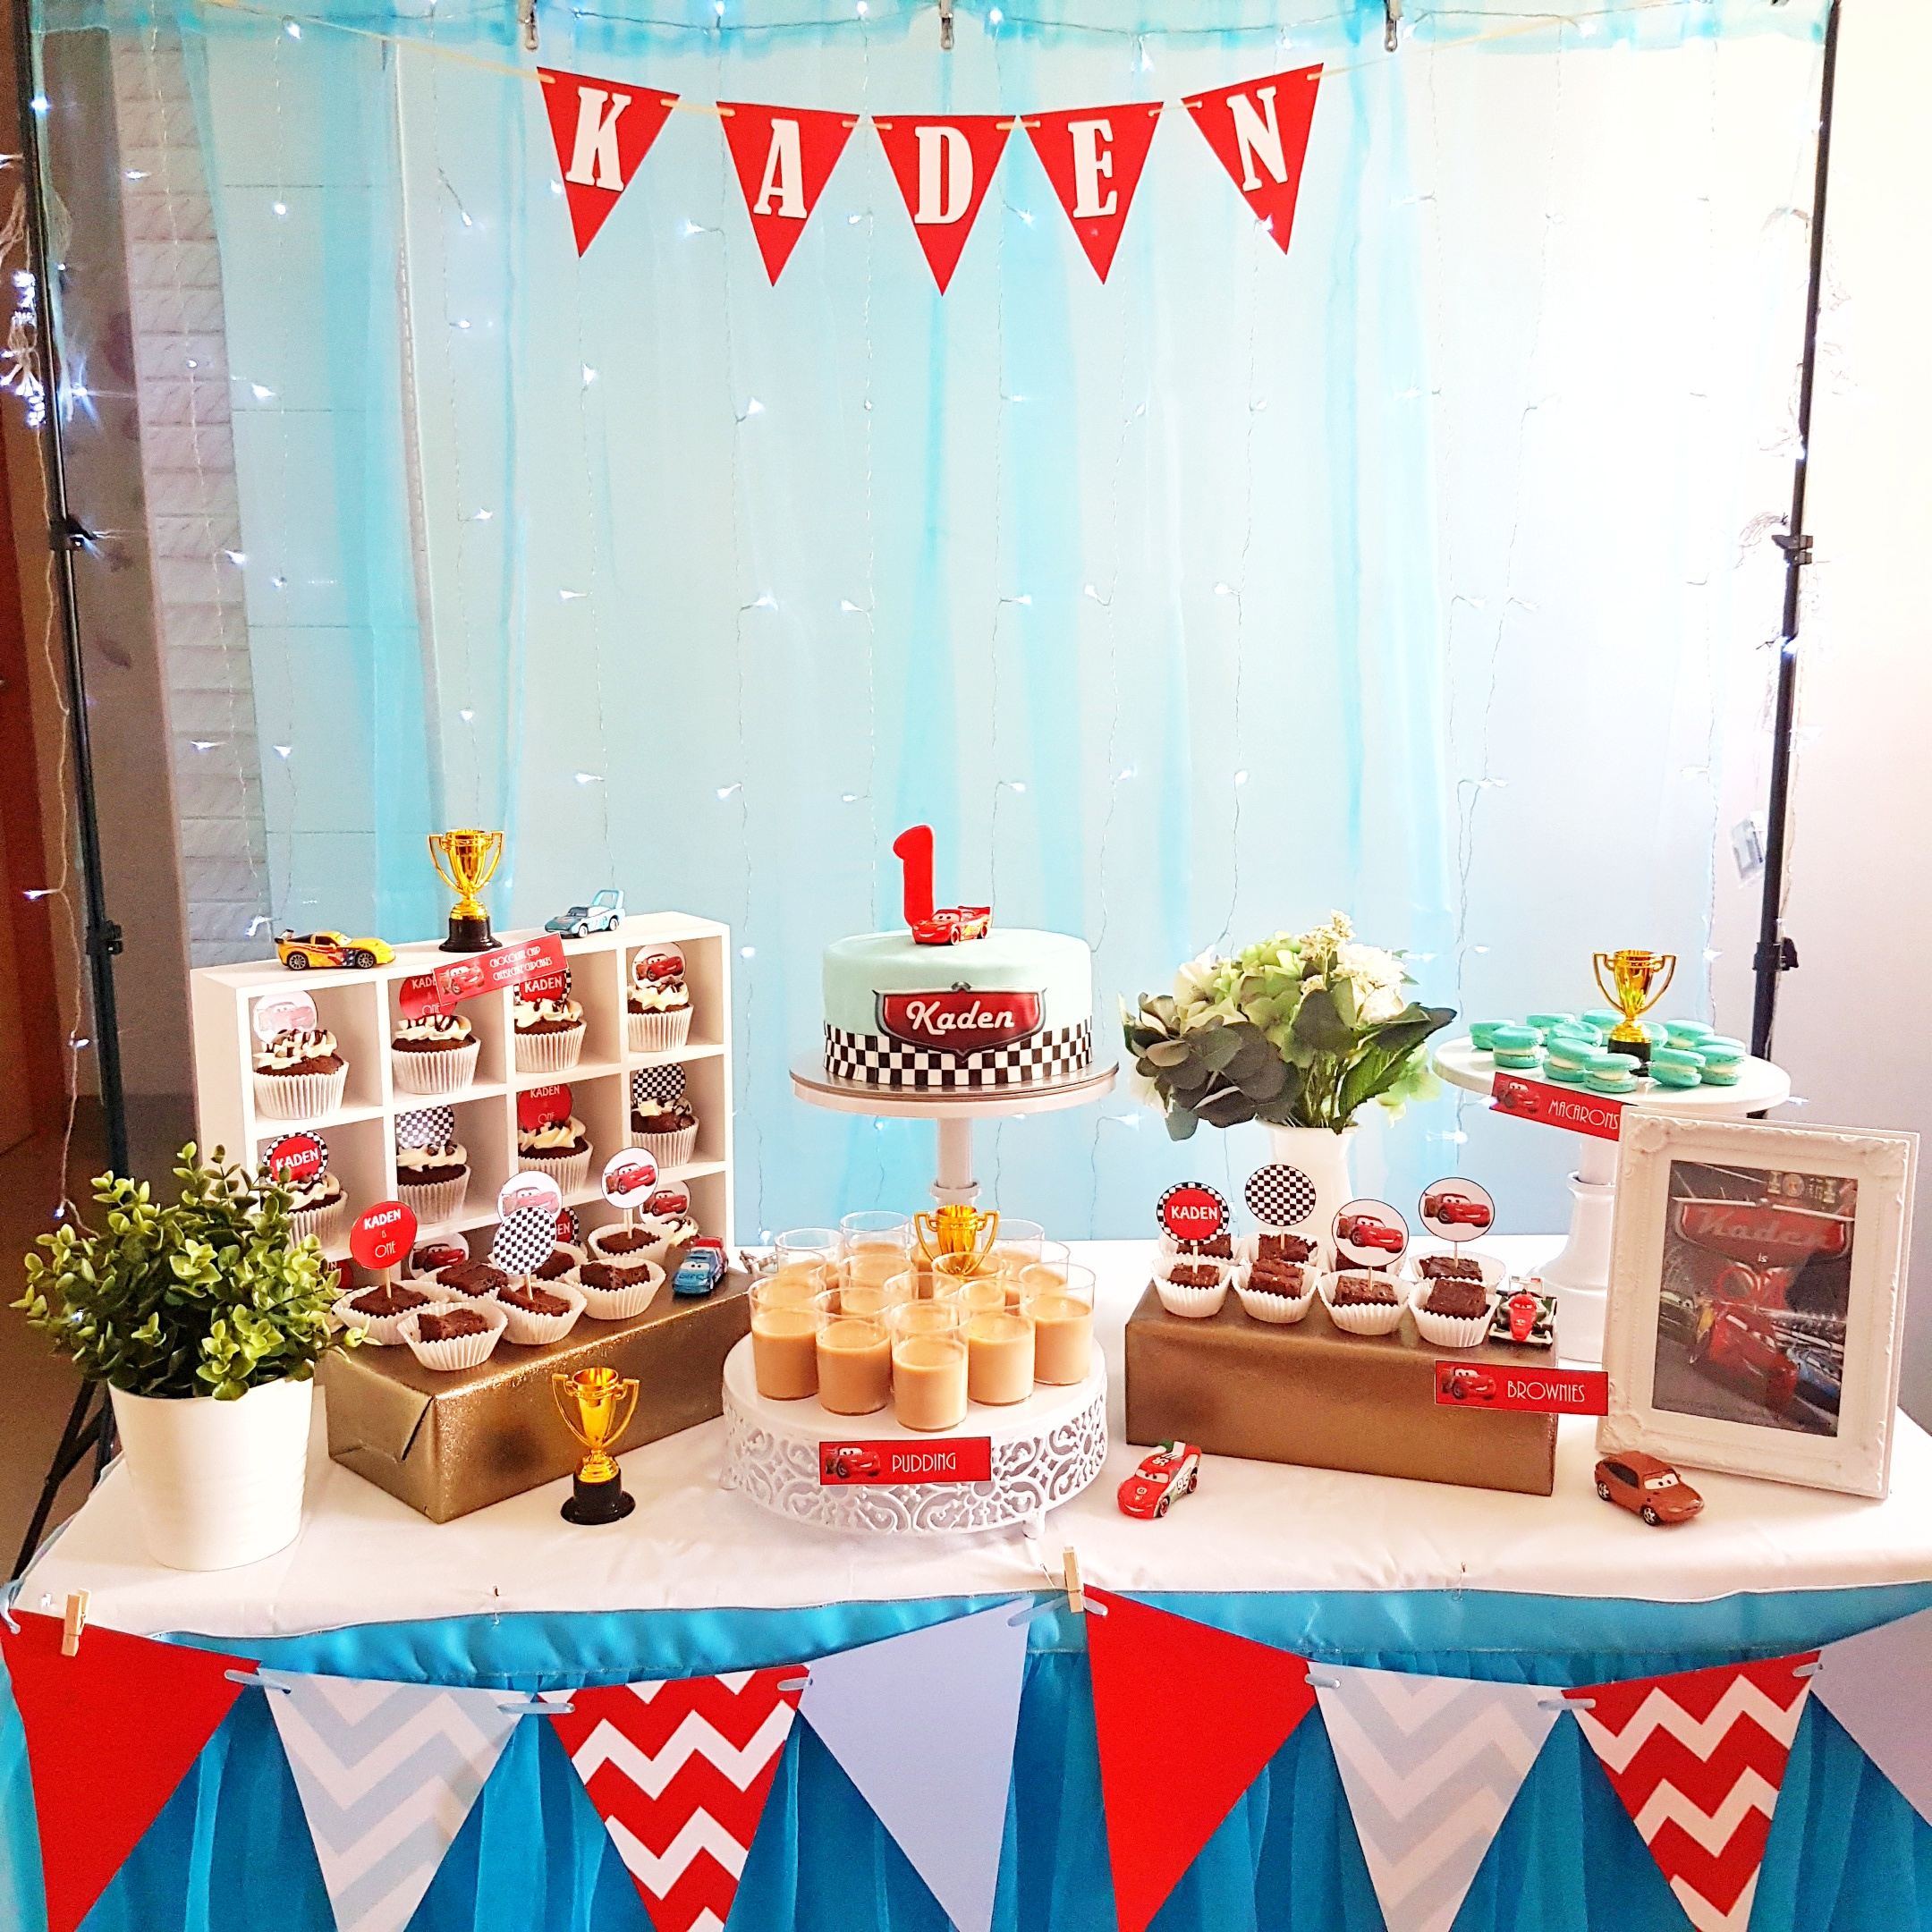 Race Car Theme Dessert Table by The Baking Experiment